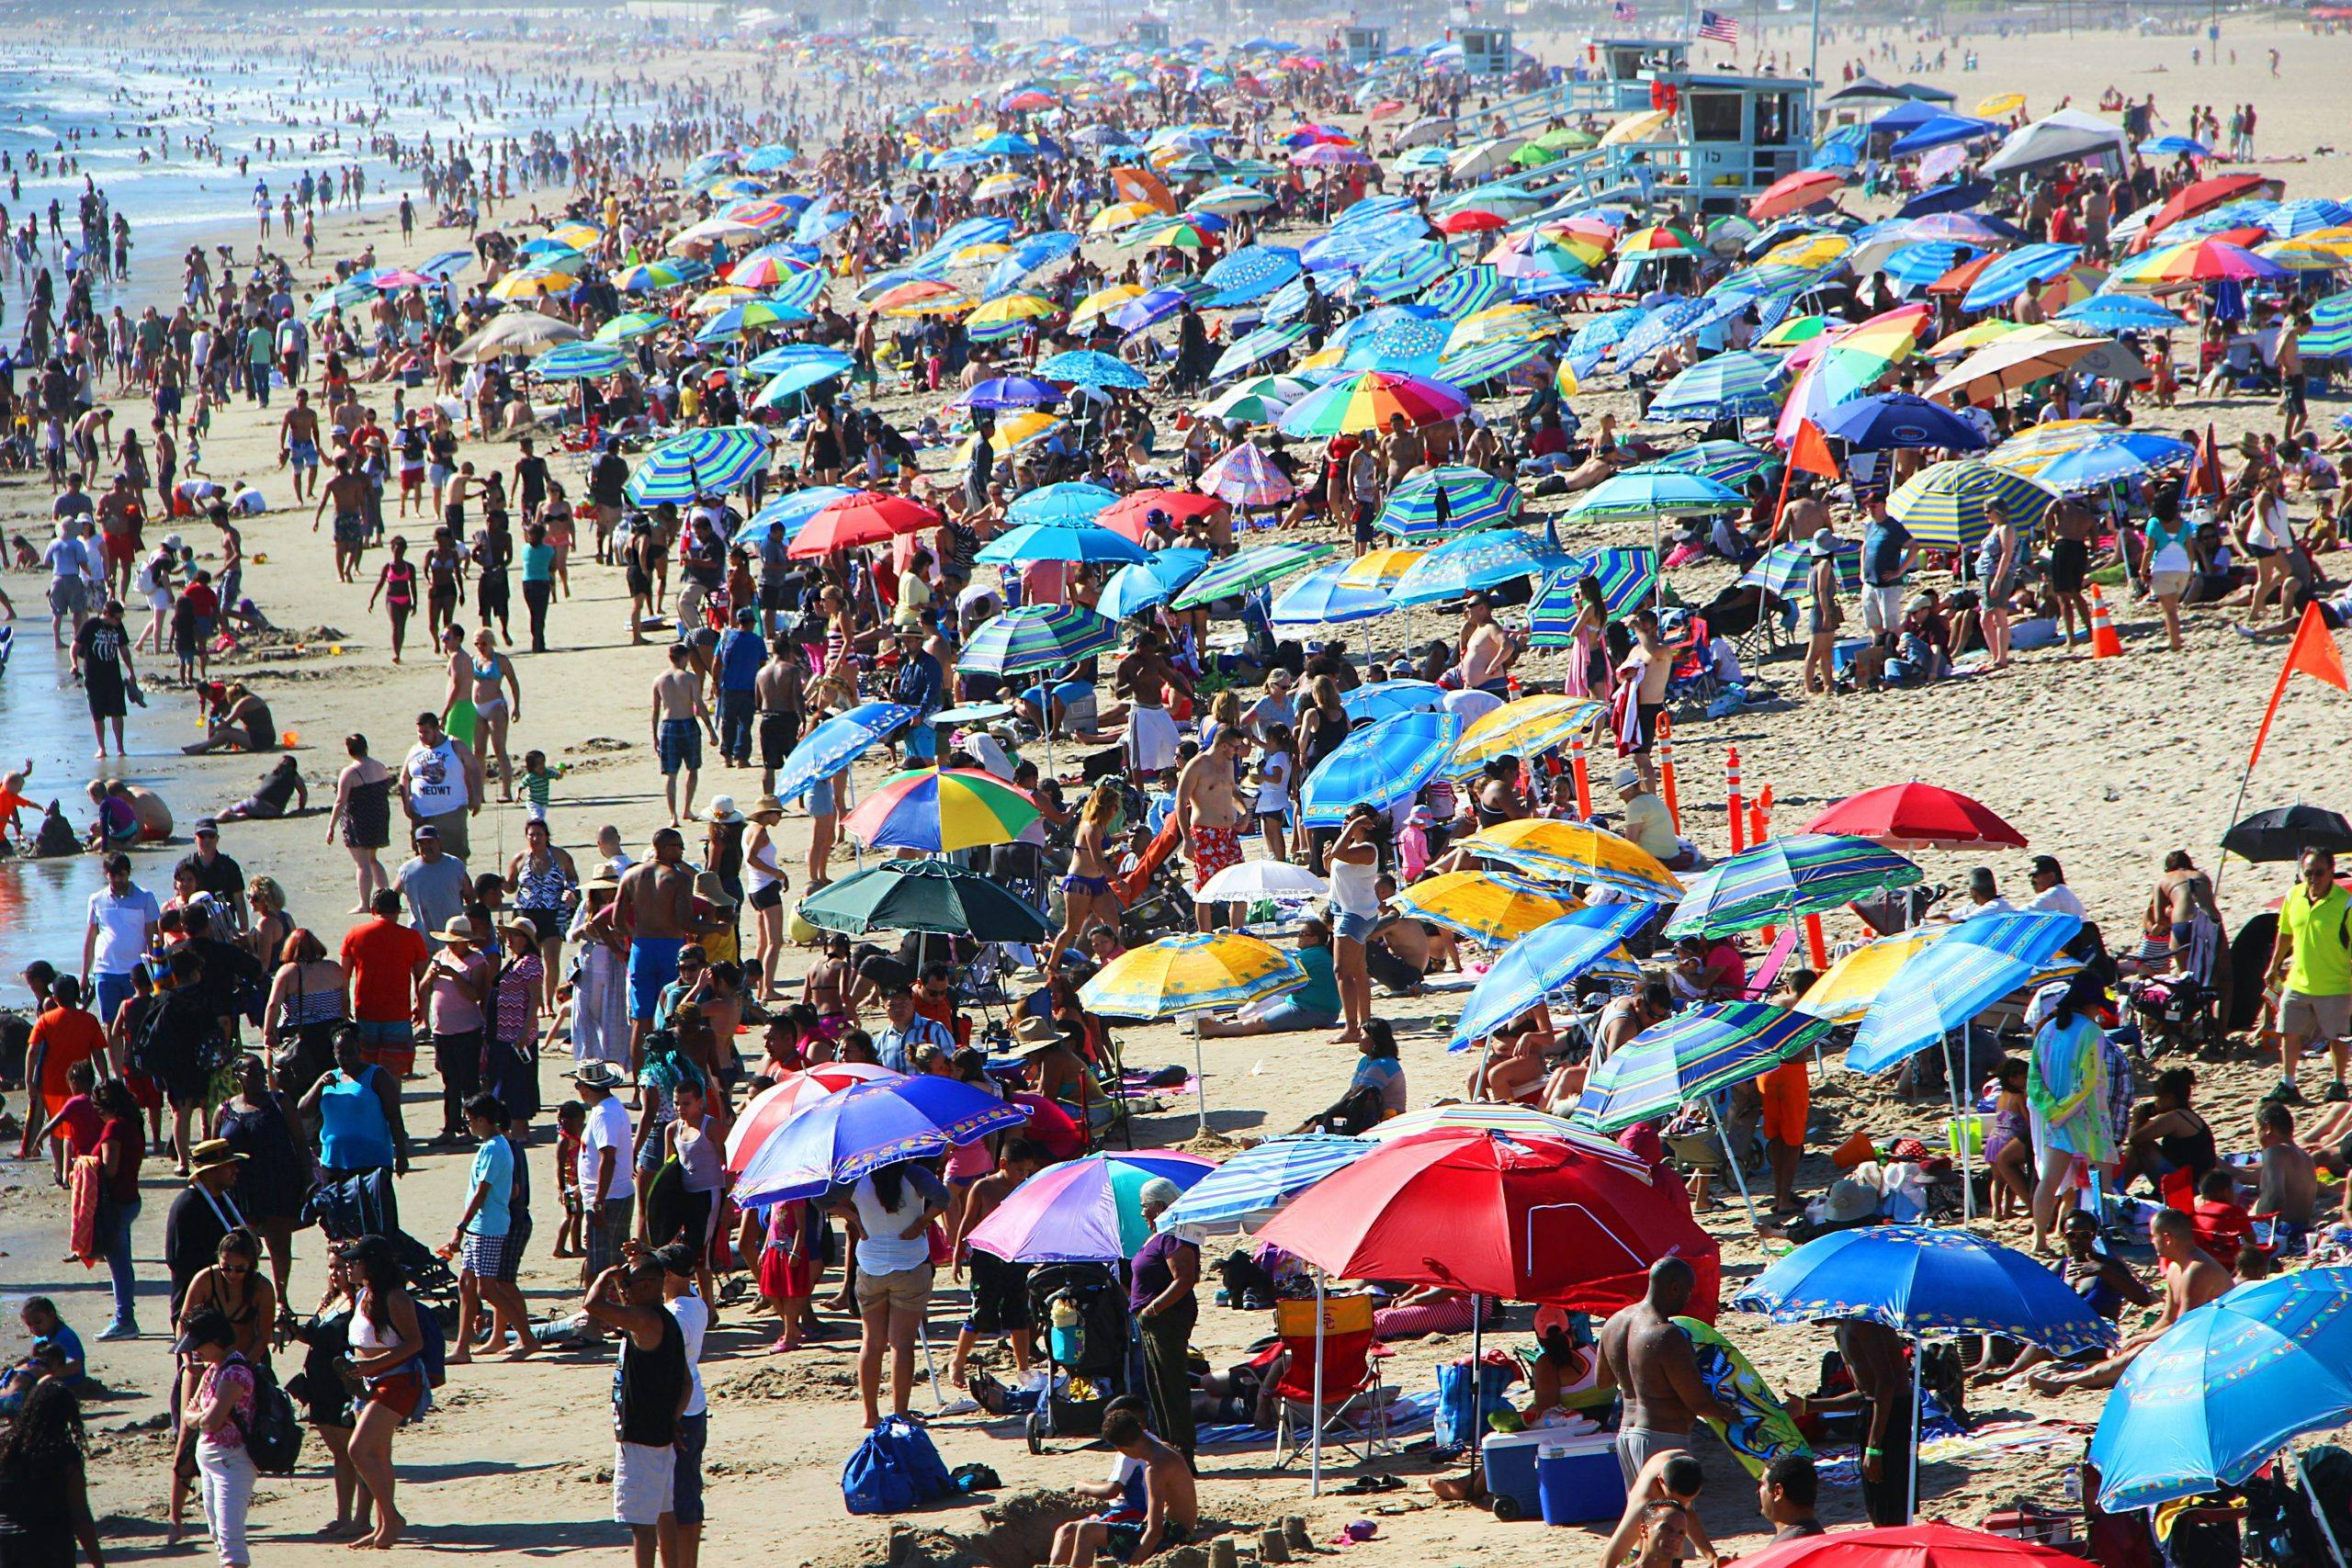 A crowd congregates on the beach on a sunny day.